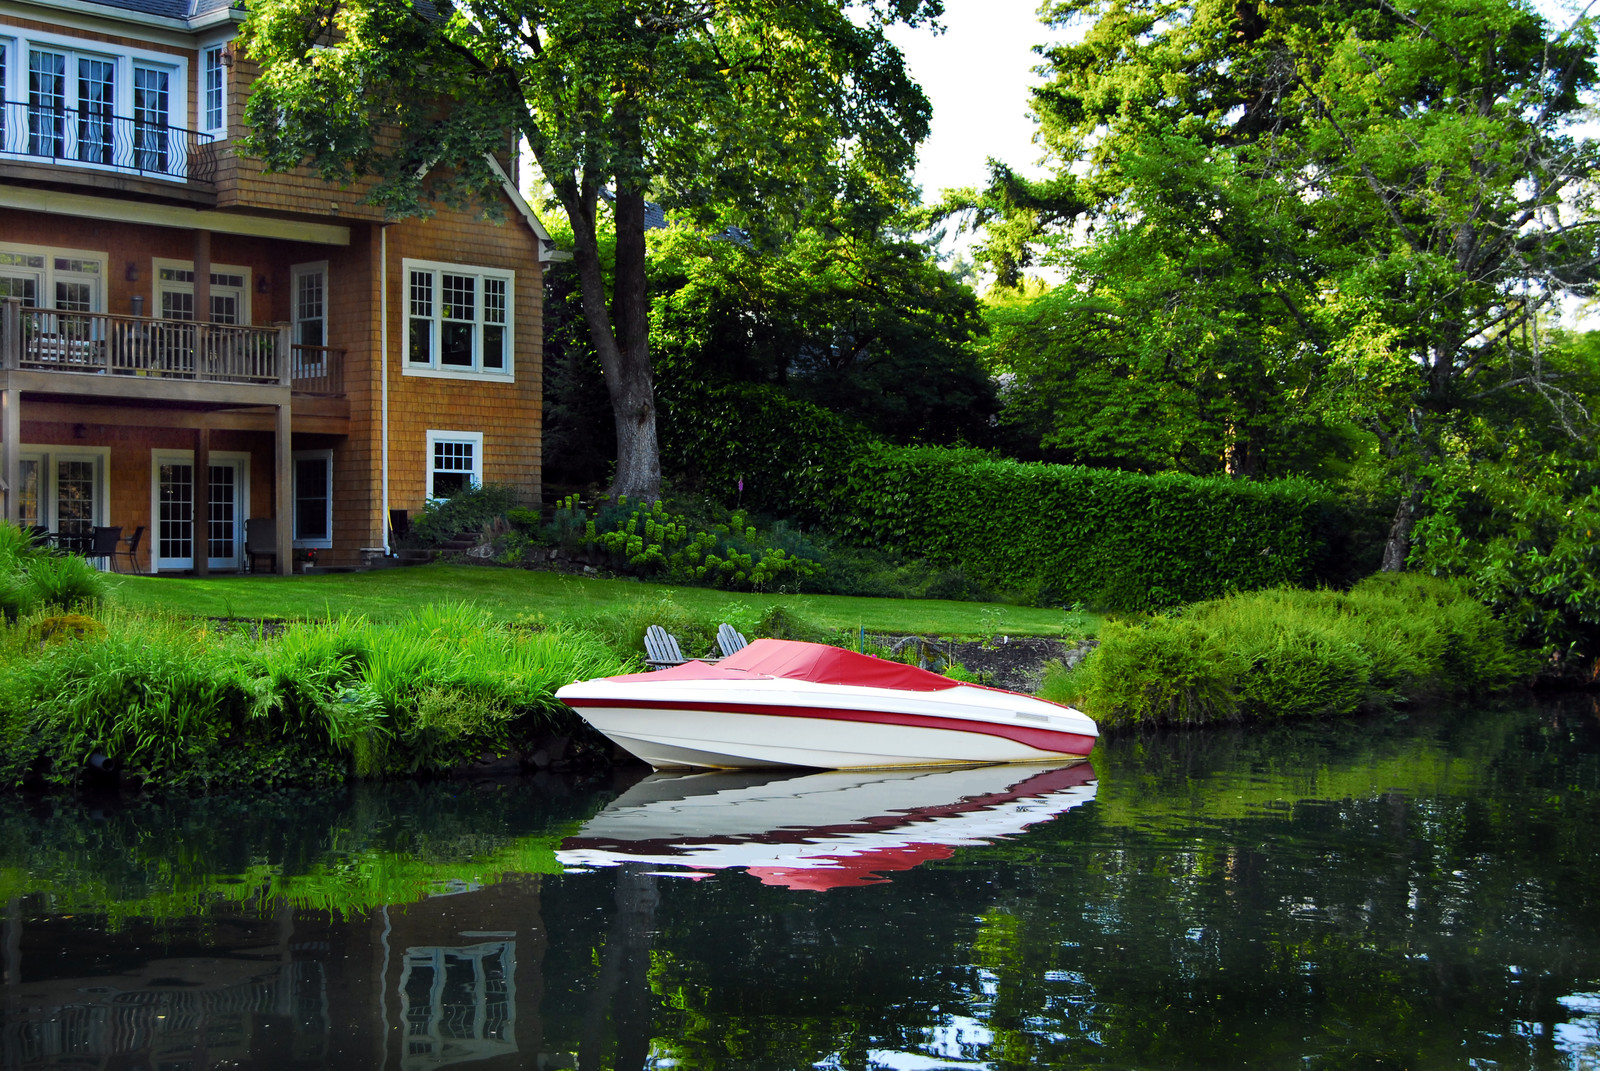 A home on Lake Oswego with a red and white boat docked out front.  With green well manicured lawns and mature trees surrounding the property